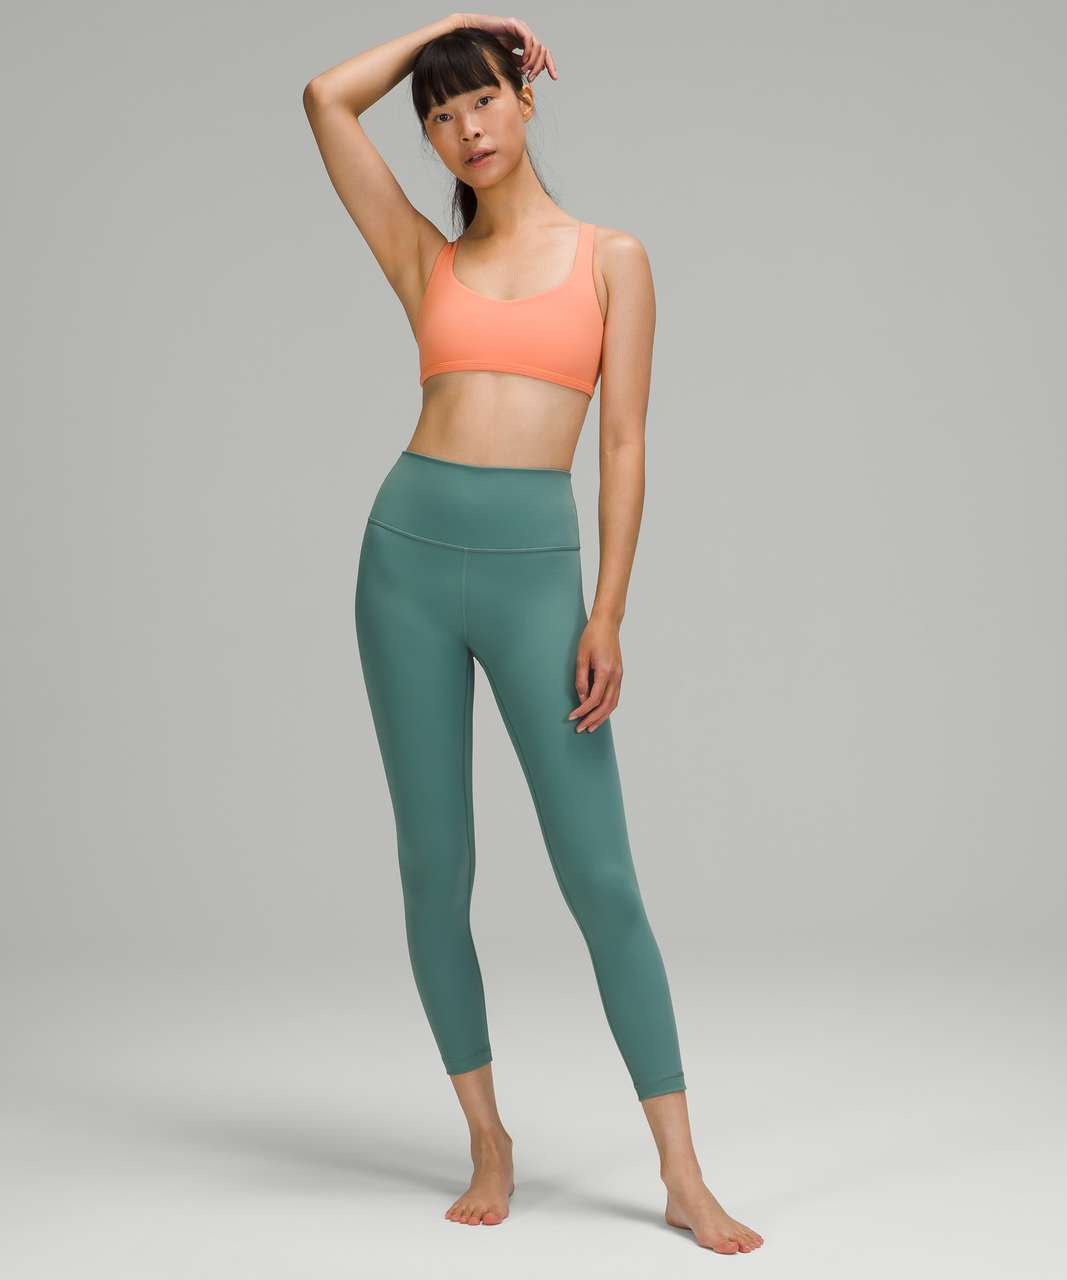 Lululemon Free to Be Bra - Wild *Light Support, A/B Cup - Golden Apricot